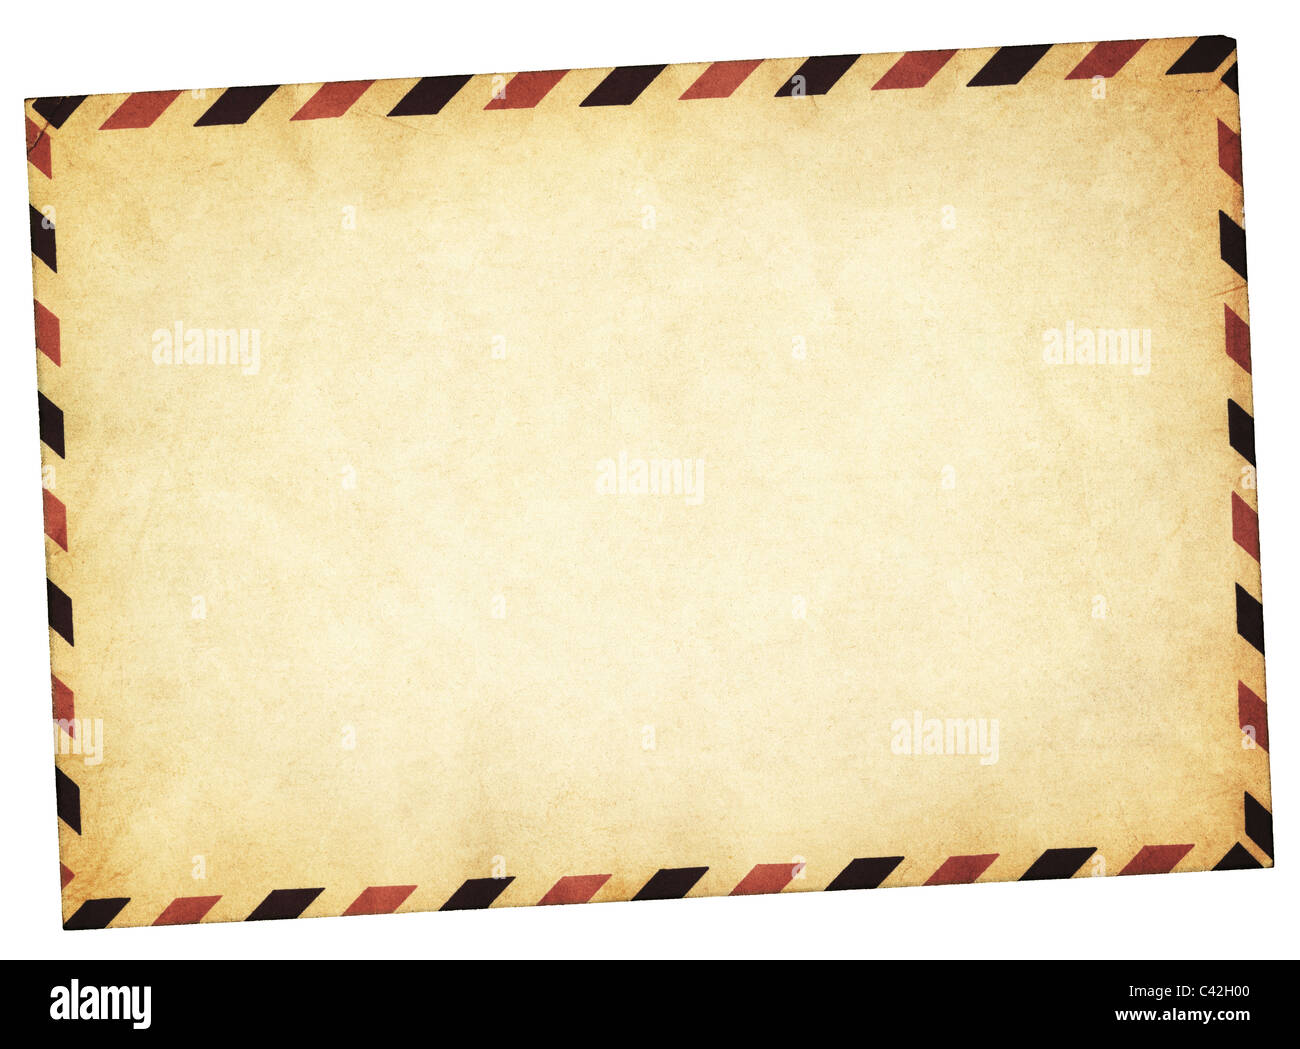 Vintage style envelope path added - Stock Image